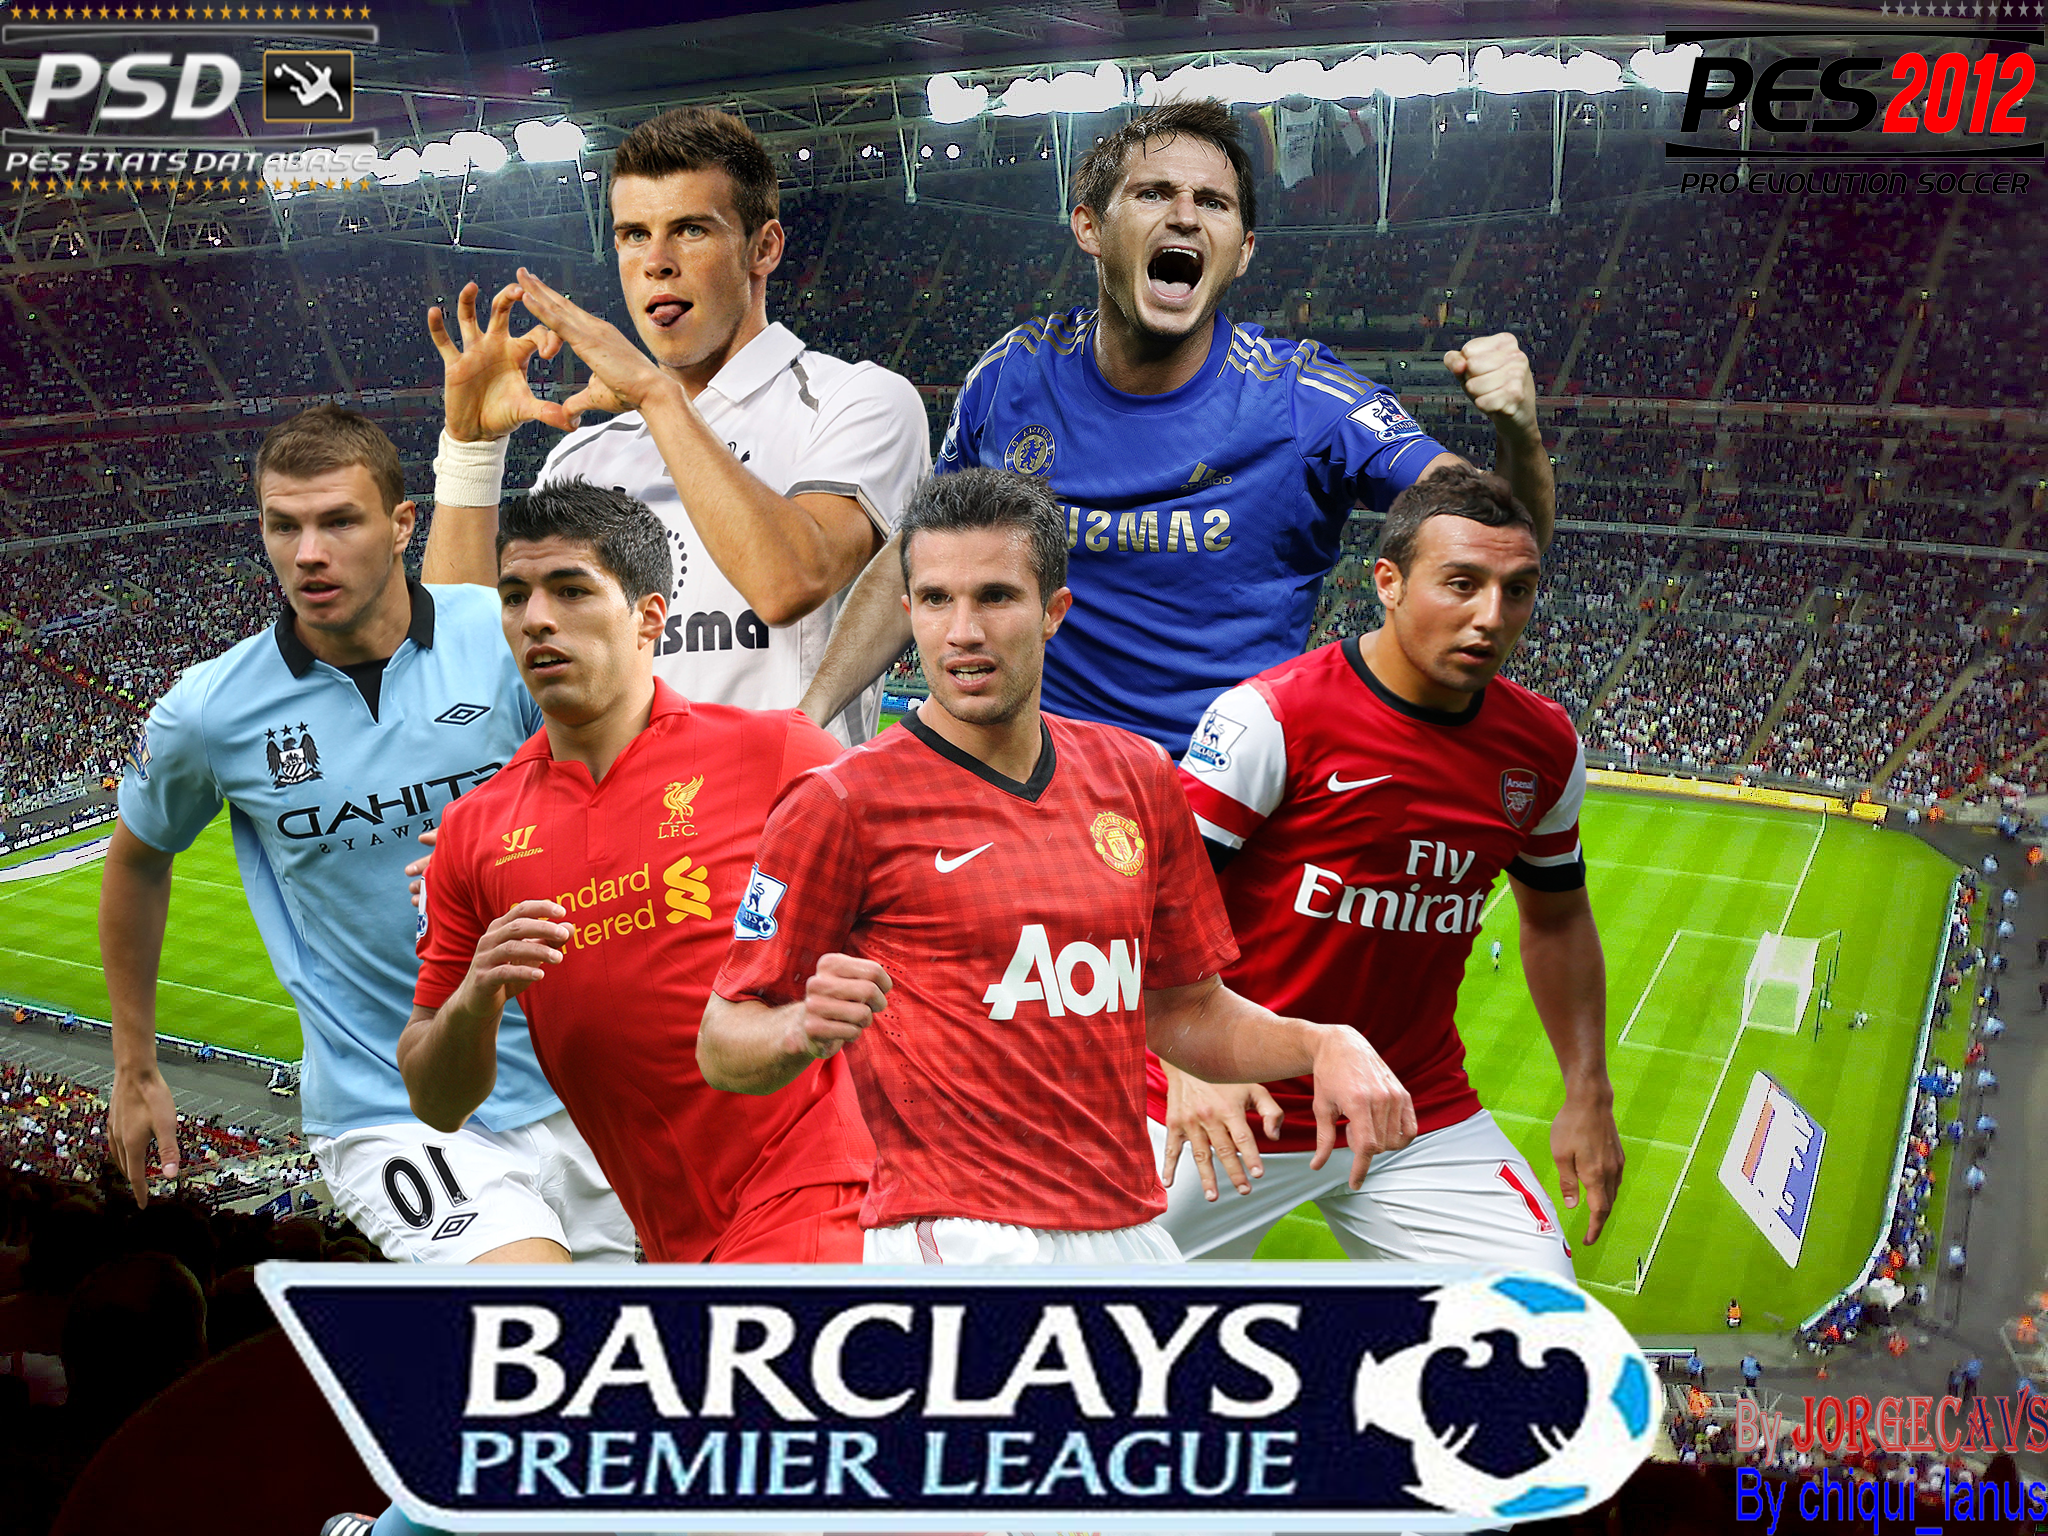 Download Premier League Wallpapers Gallery